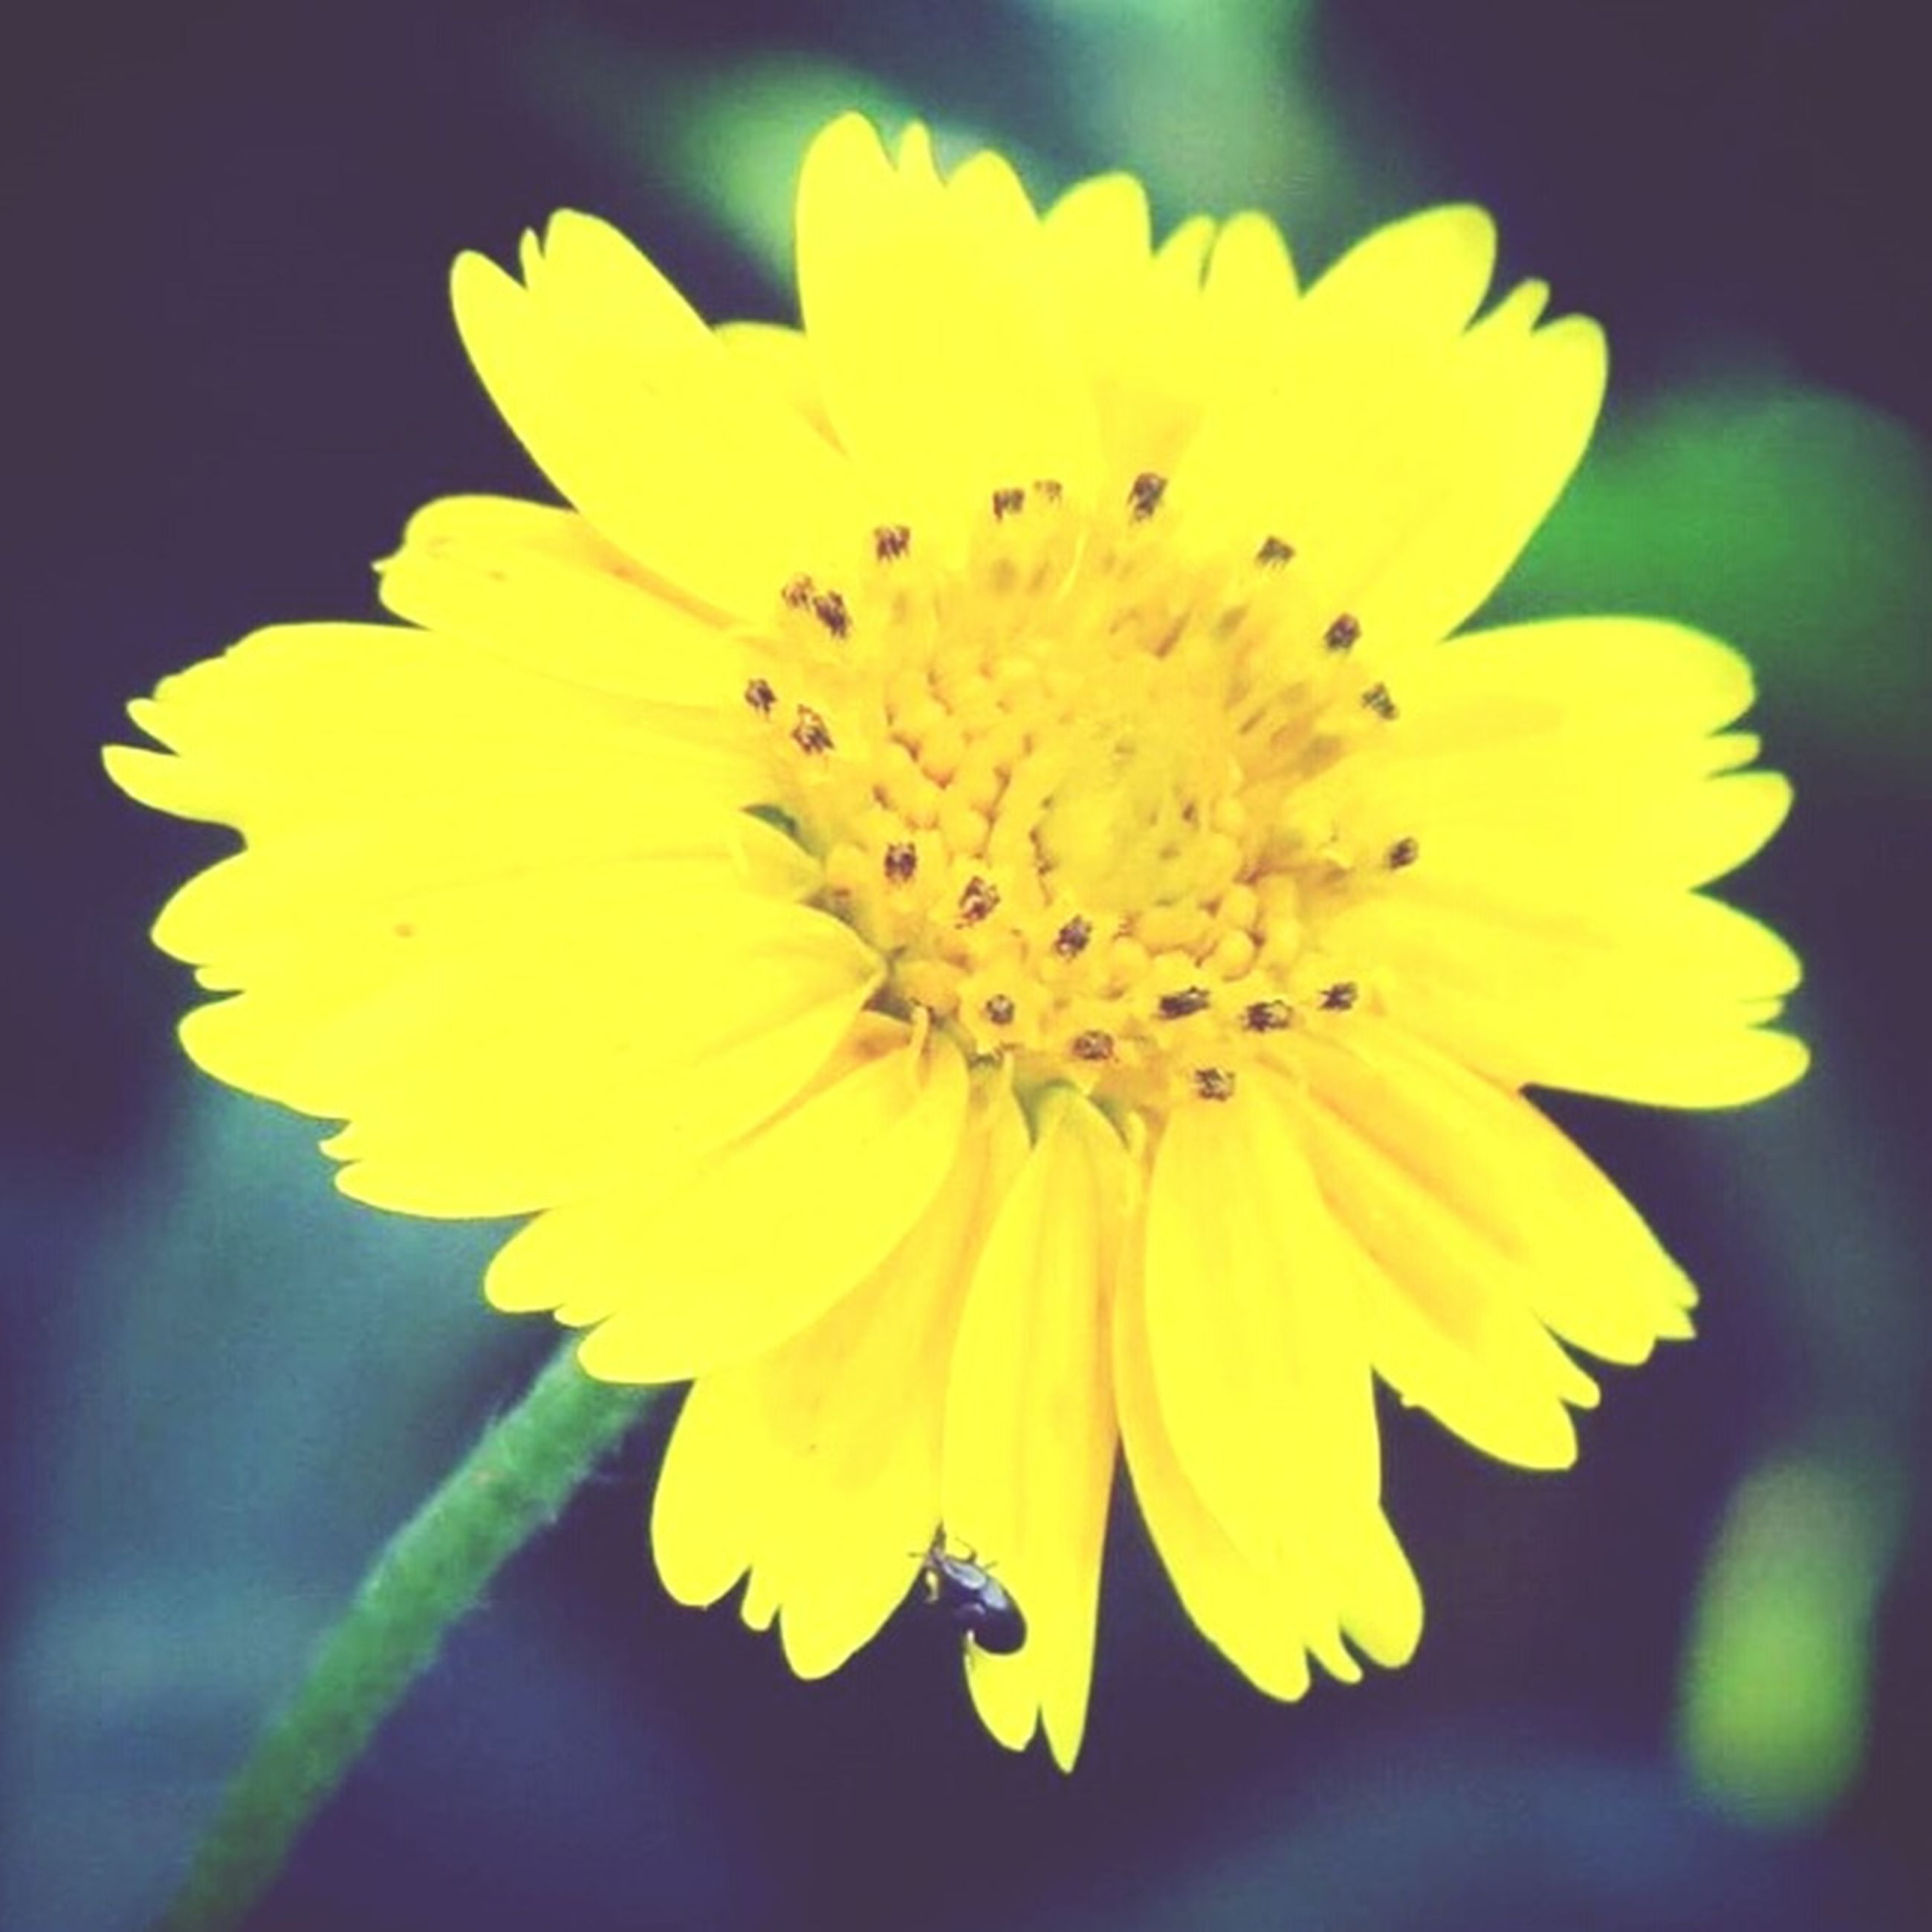 flower, petal, yellow, freshness, flower head, fragility, growth, close-up, beauty in nature, single flower, blooming, pollen, nature, focus on foreground, plant, in bloom, blossom, outdoors, no people, selective focus